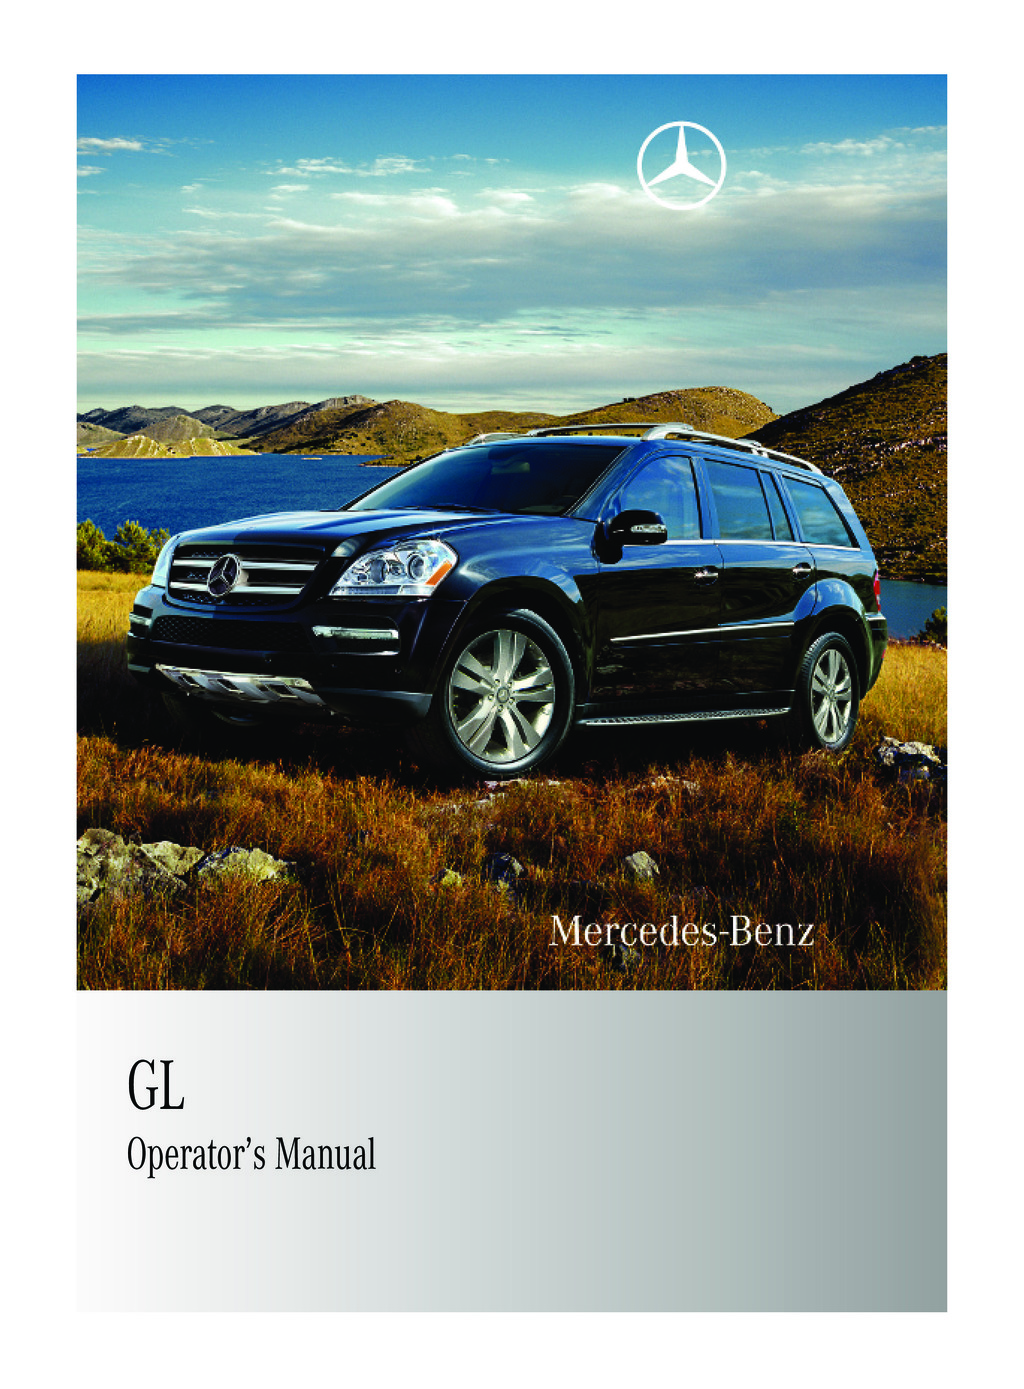 2010 Mercedes-Benz GL owners manual